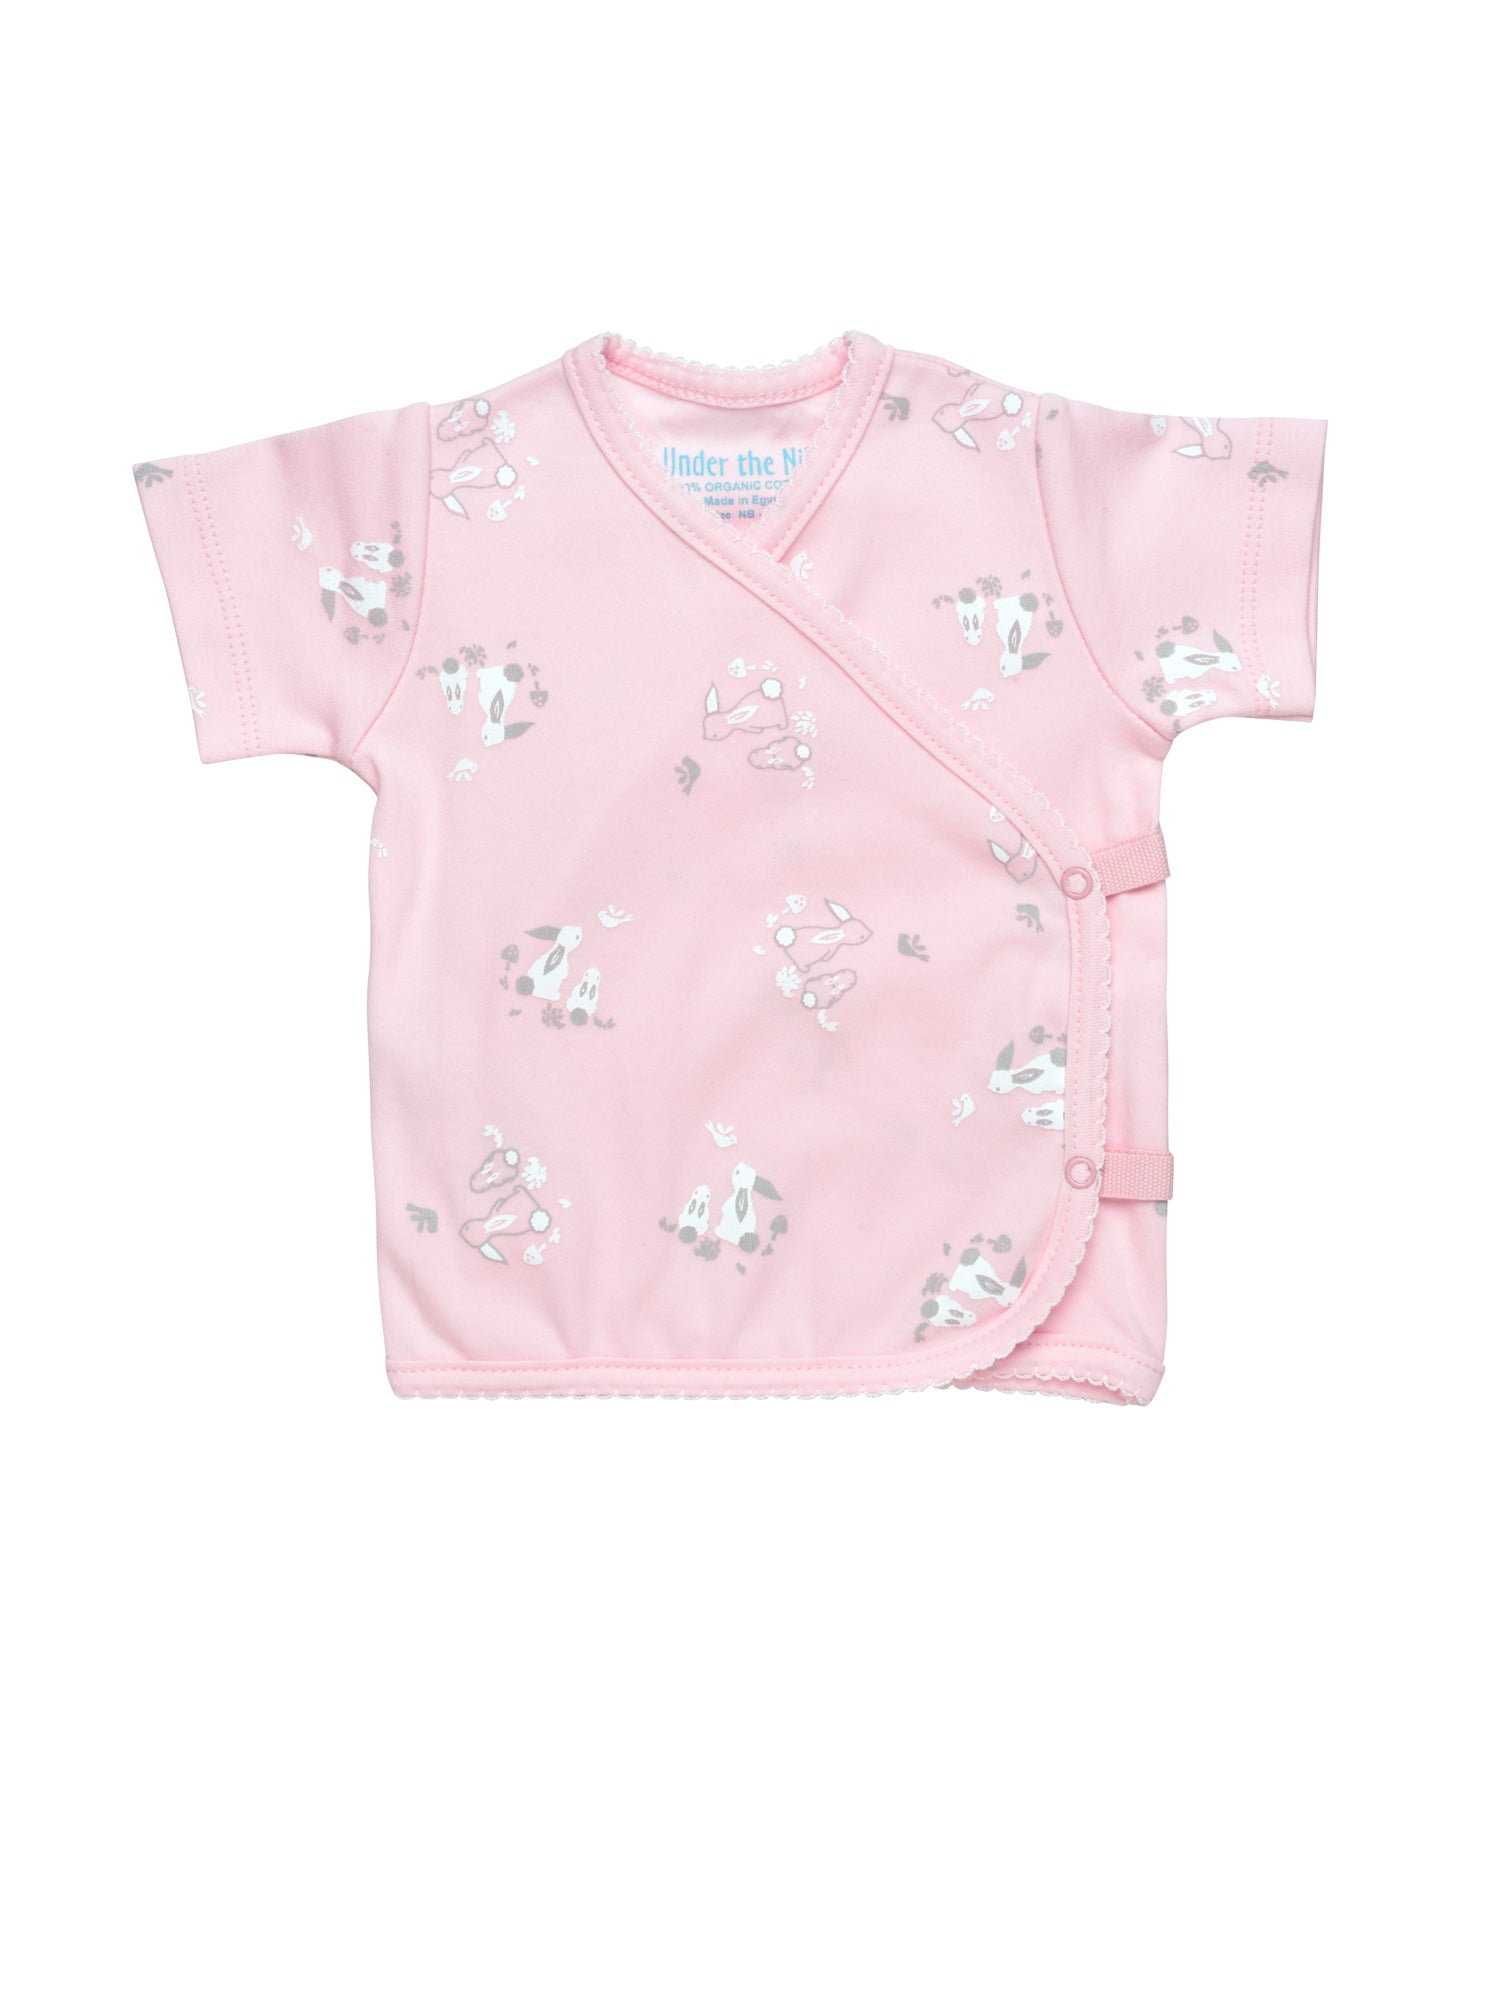 Short Sleeve Side Snap T-Shirt - Pink Bunny Print